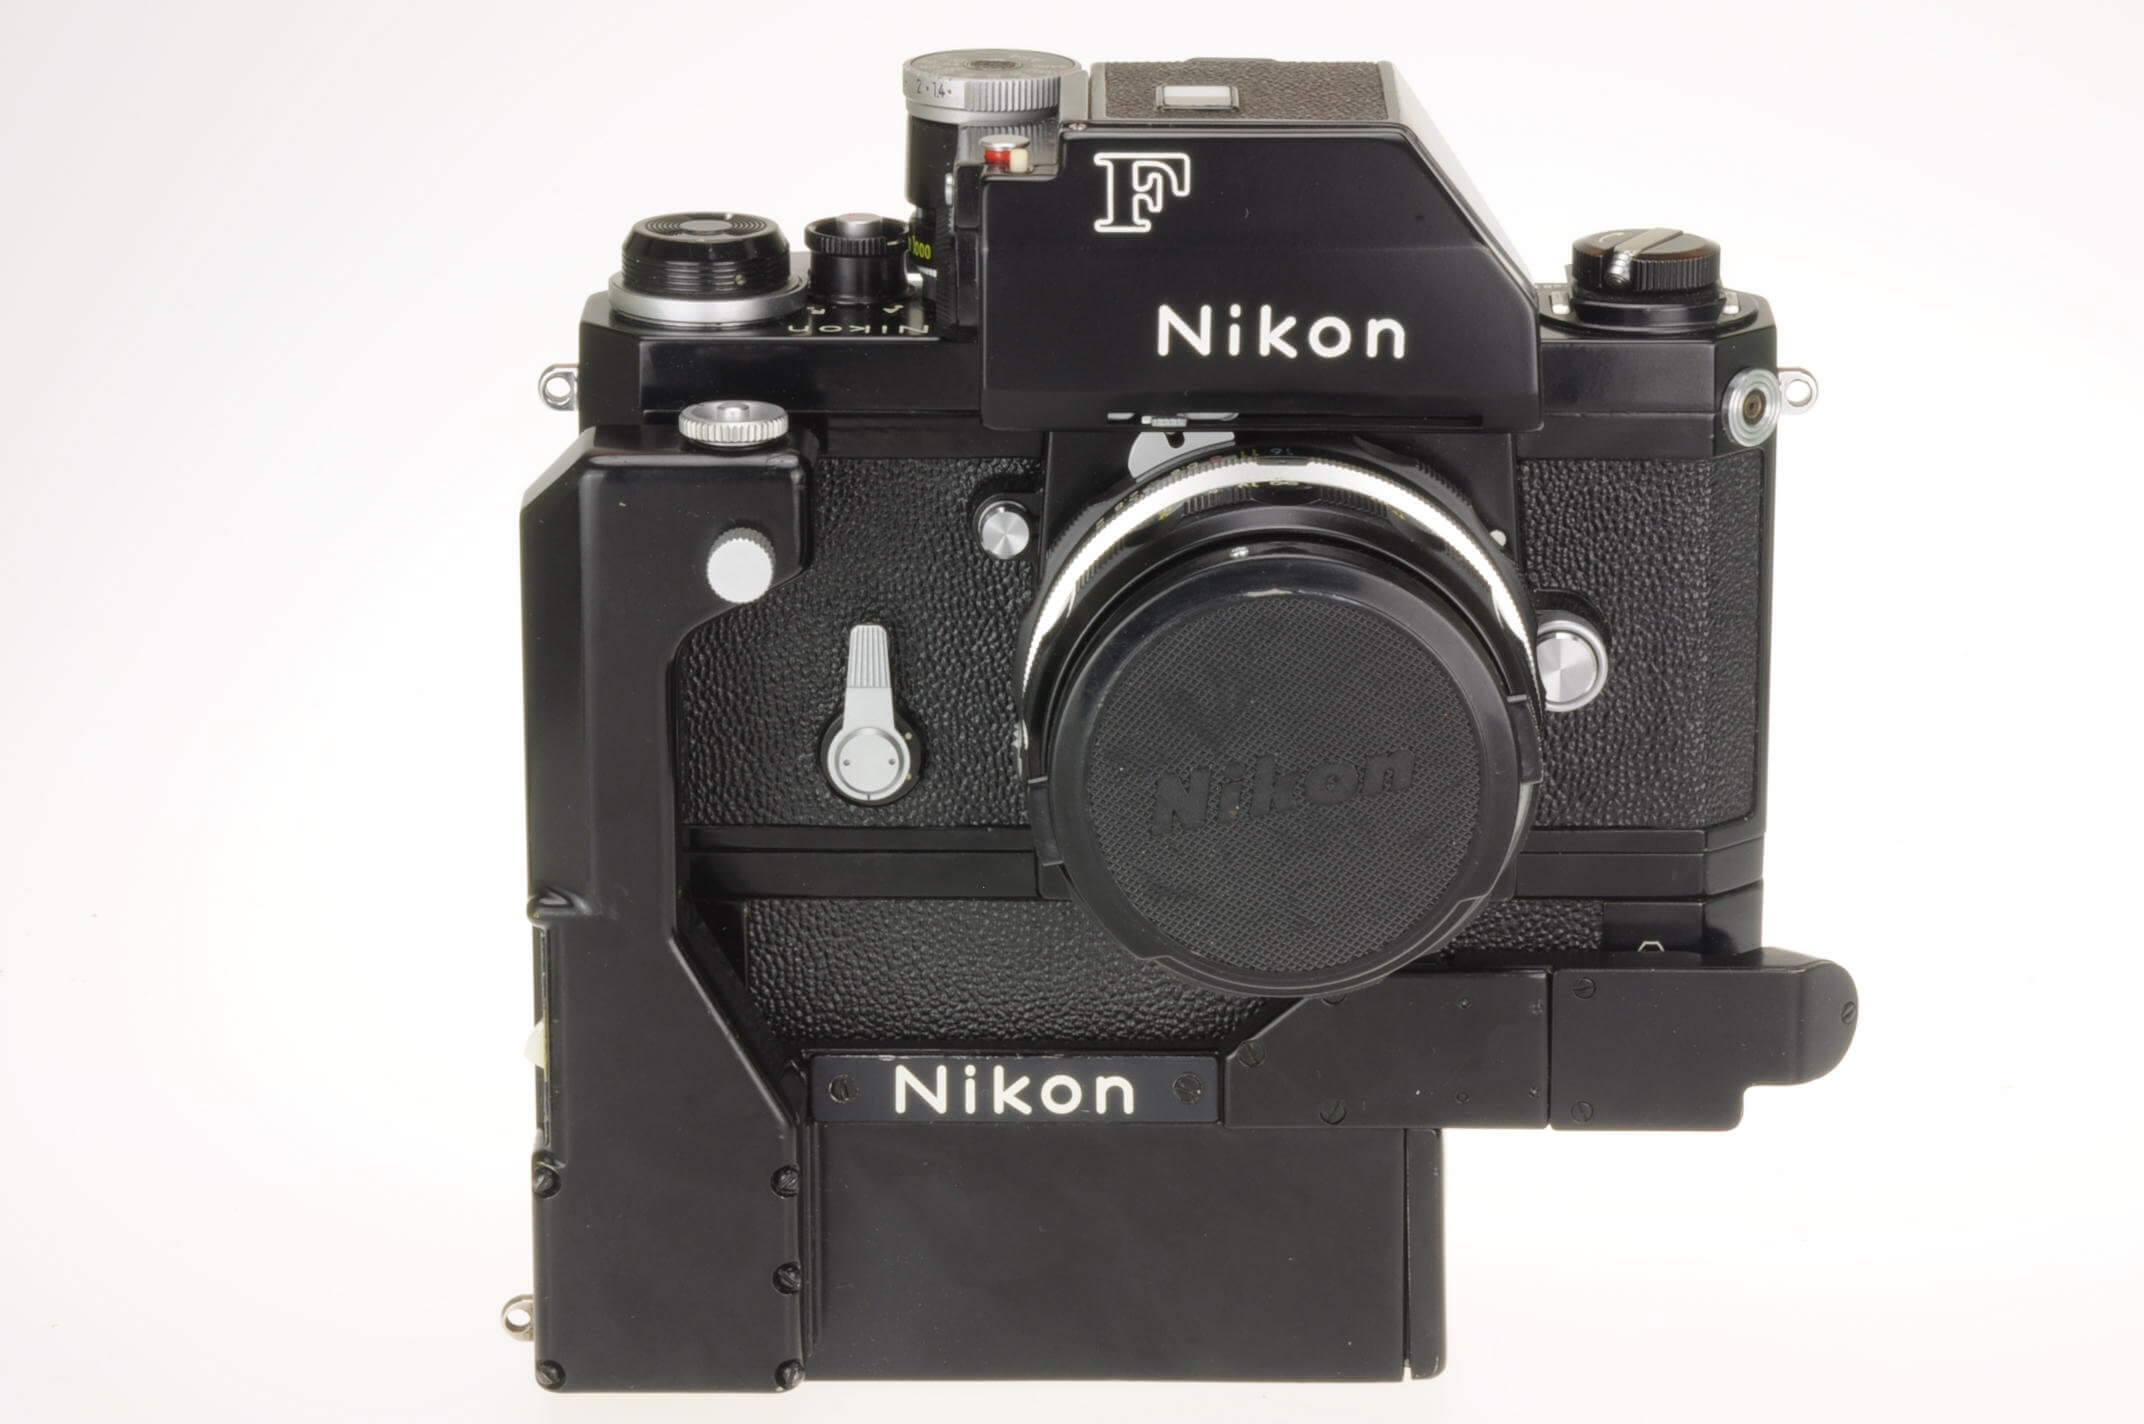 Nikon F body with F36 motor drive, metered prism and 50mm lens, excellent condition